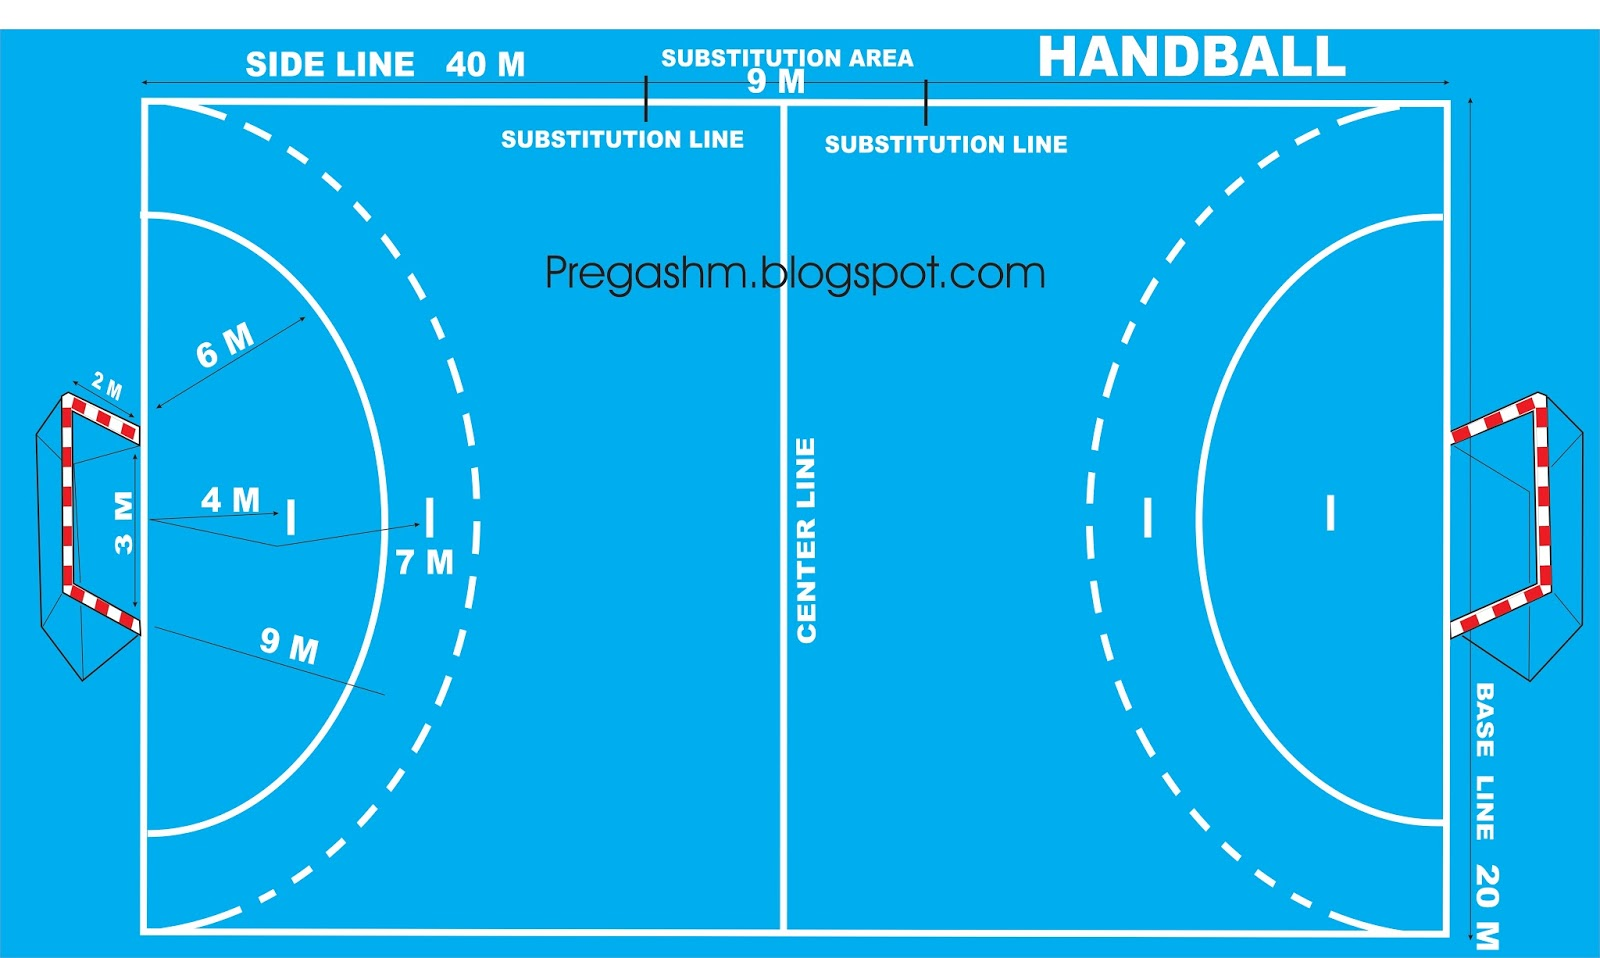 handball court diagram wiring for multiple gfci outlets football measurement drainage channel